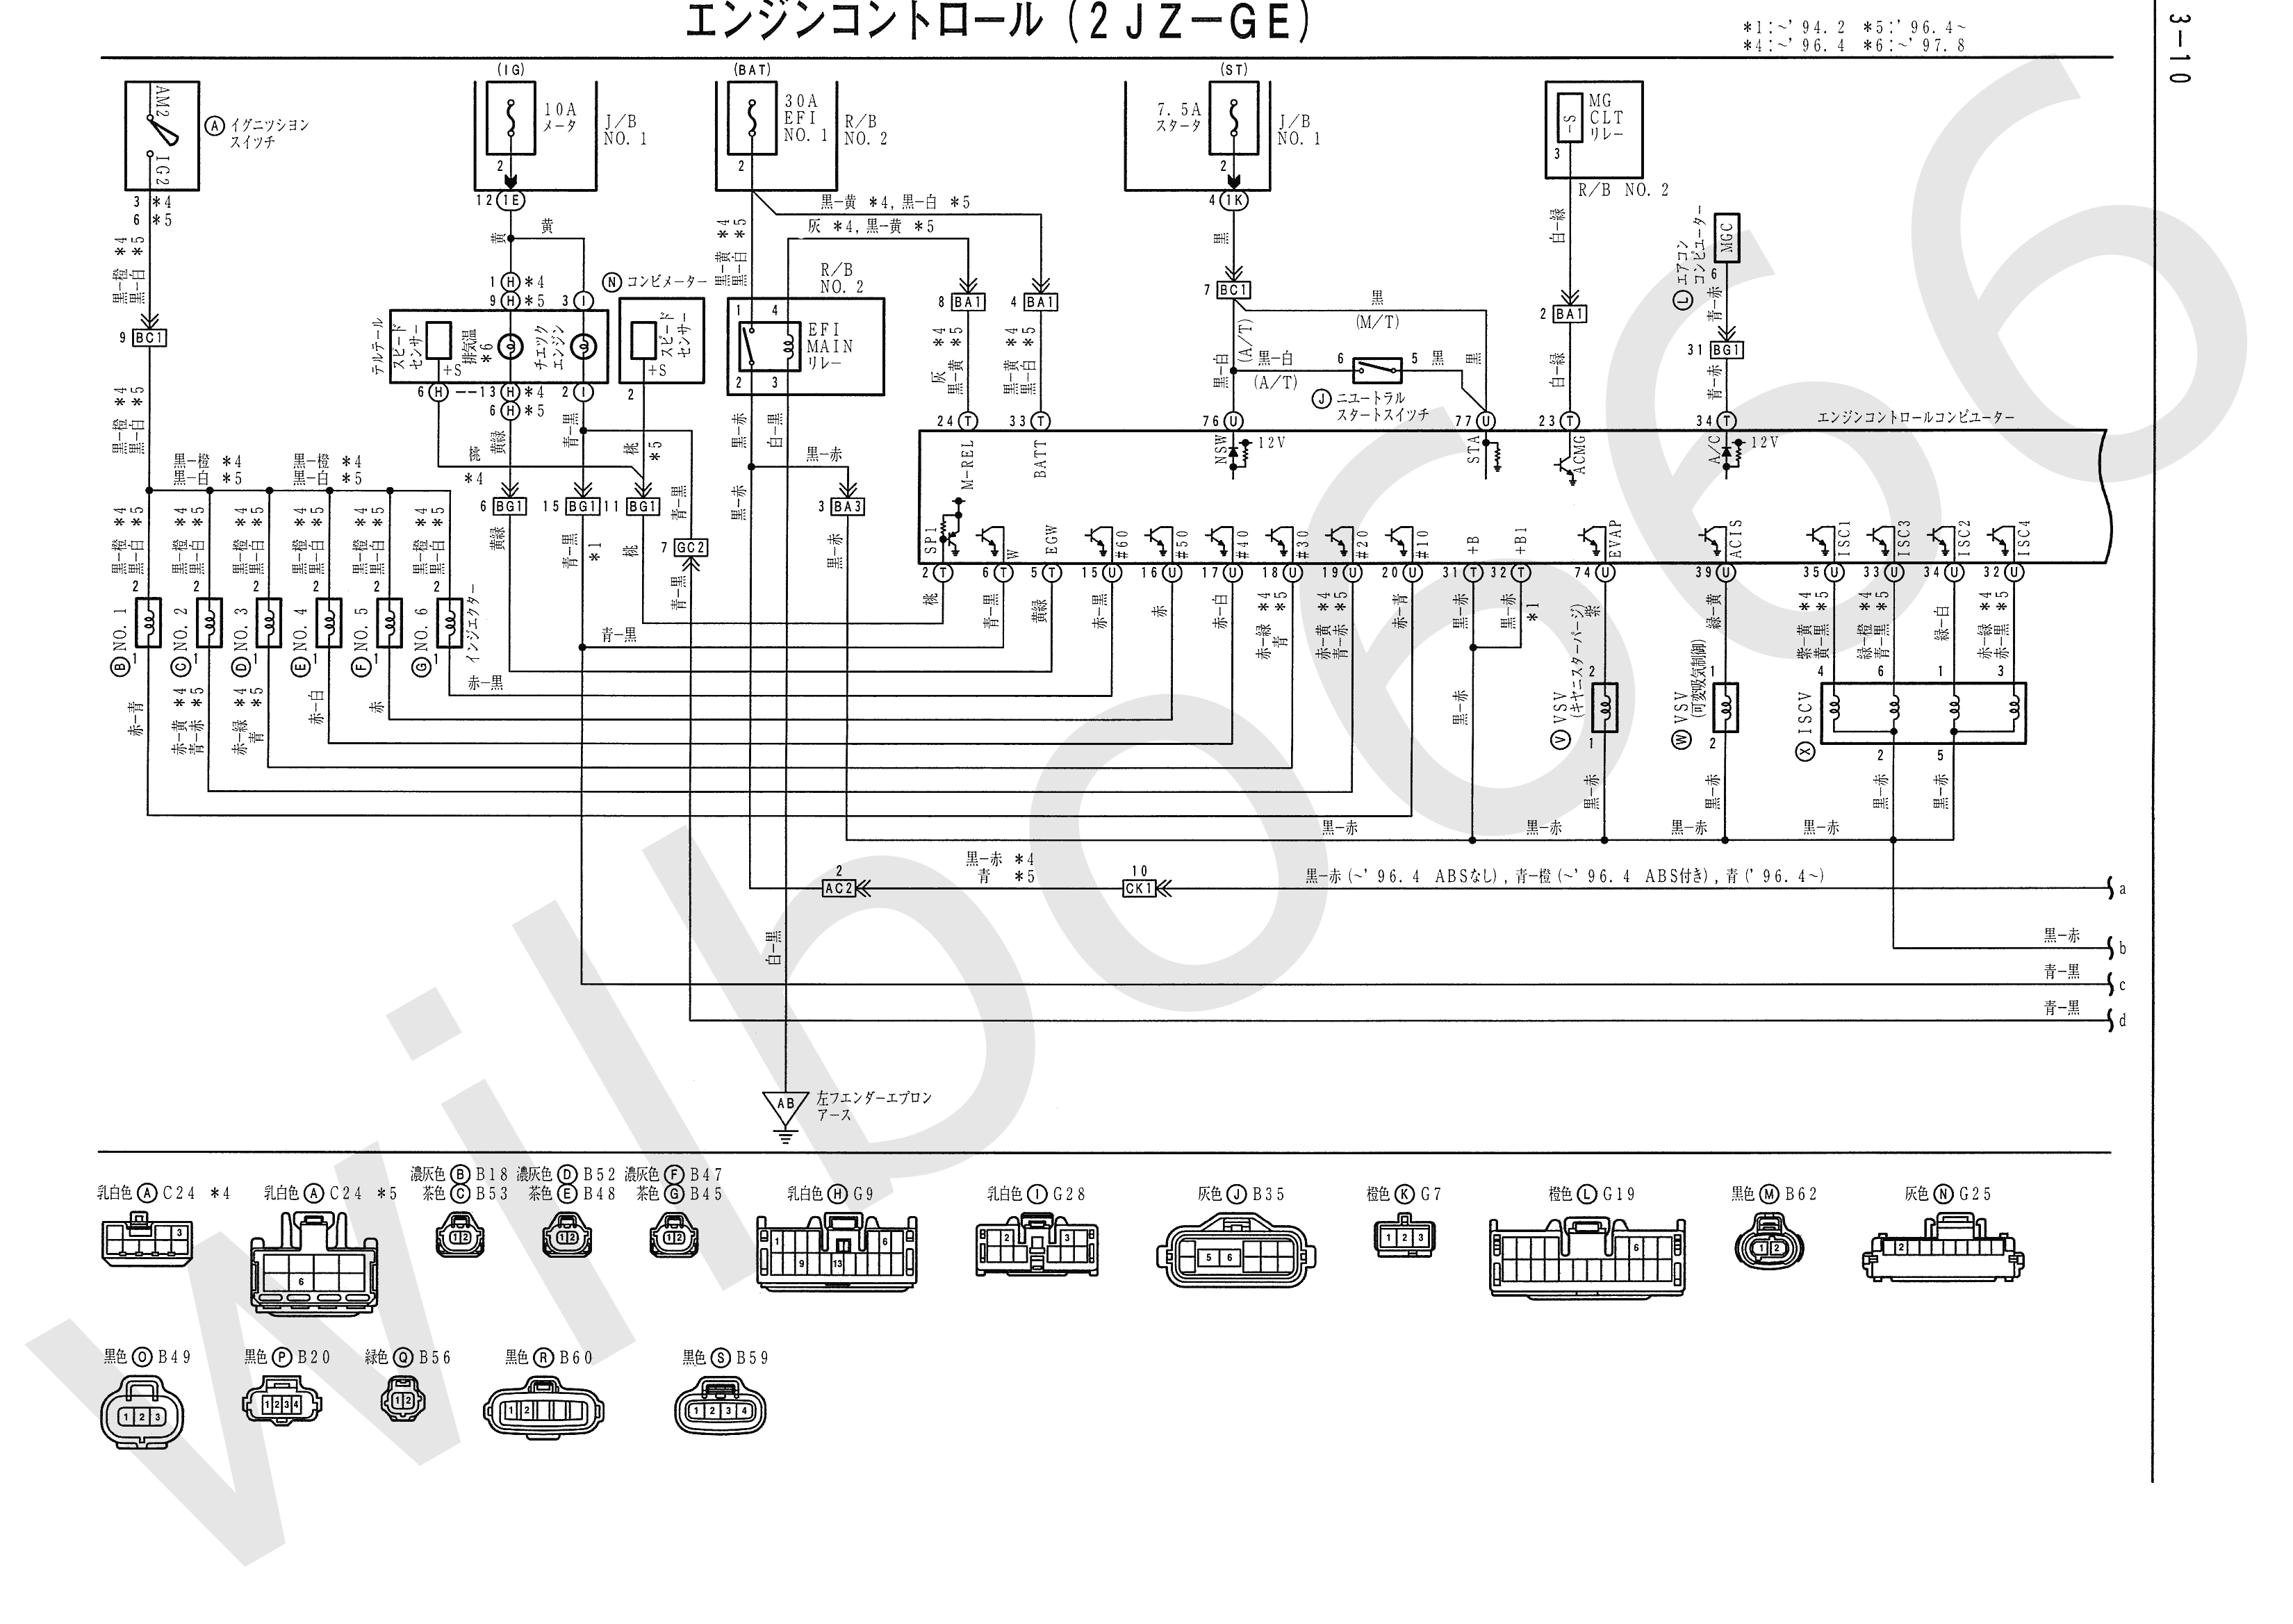 JZA80 Electrical Wiring Diagram 6742505 3 10 wilbo666 2jz ge jza80 supra engine wiring ge wiring diagrams at webbmarketing.co